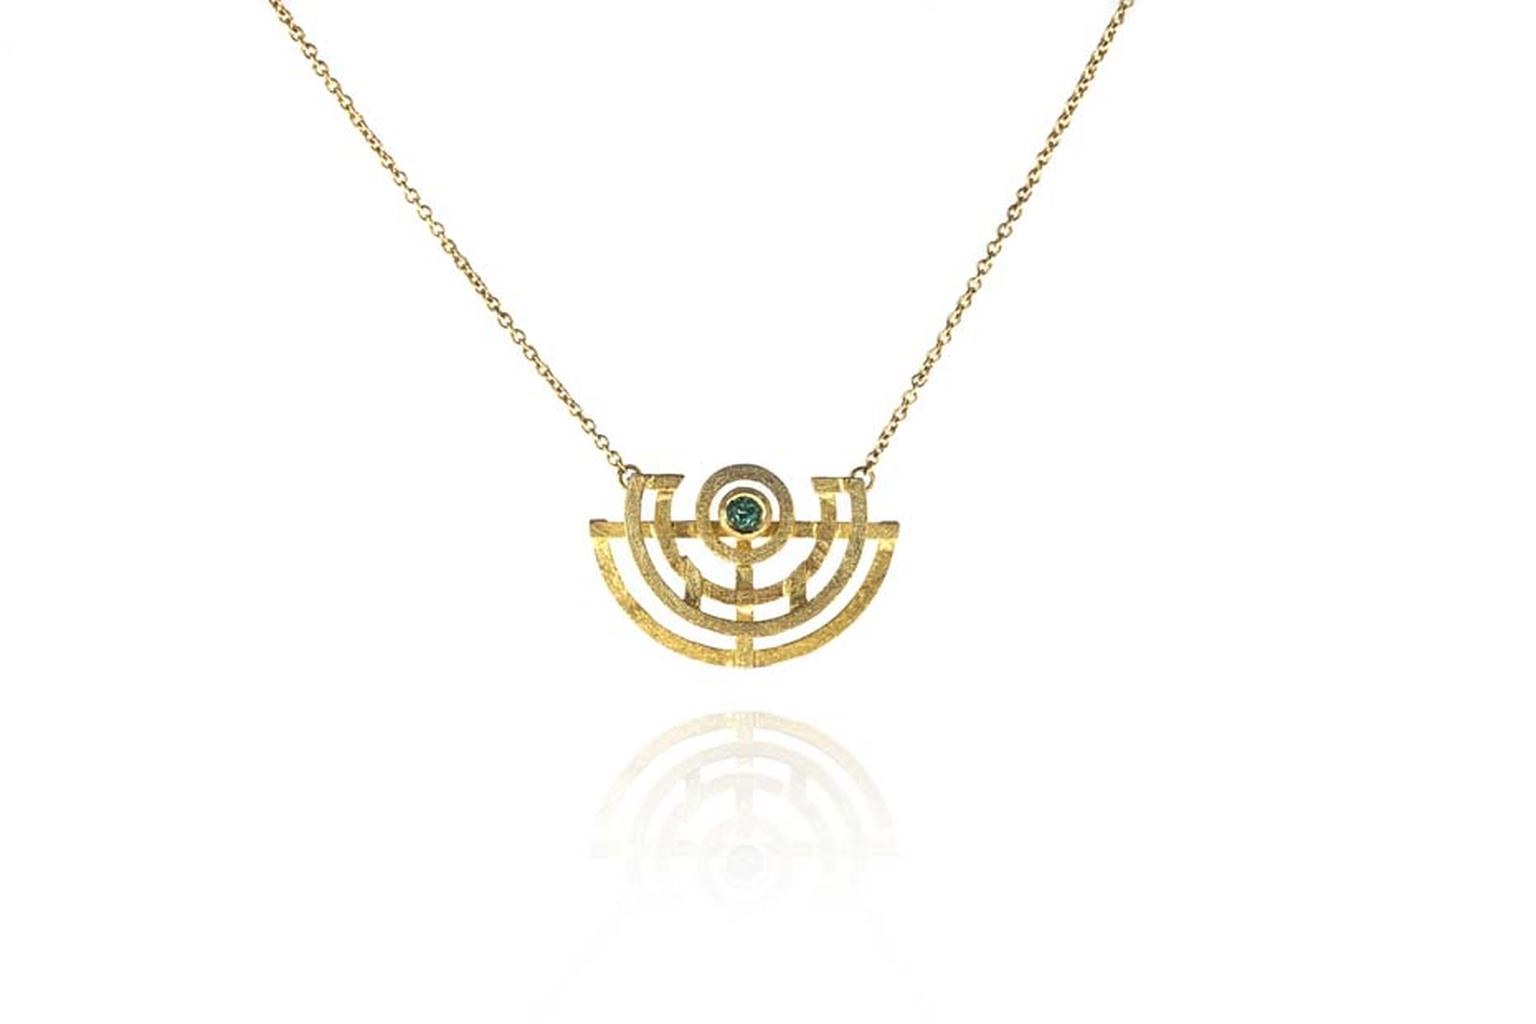 Shimell and Madden's Symmetry collection Symmetry pendant with a Paraiba tourmaline.